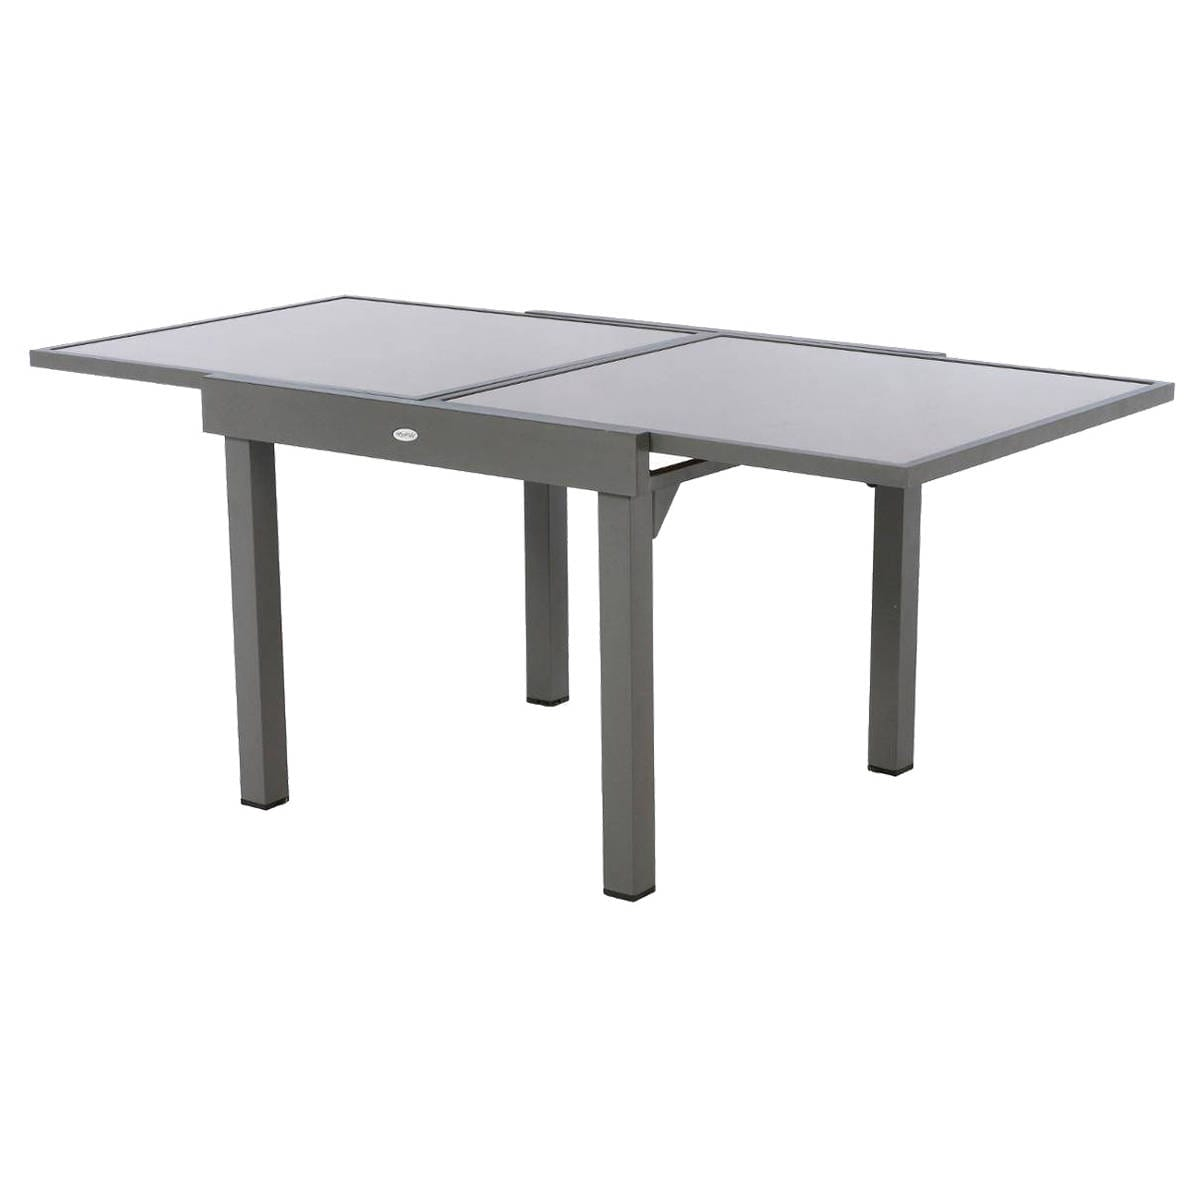 Table extensible piazza verre taupe mastic hesp ride 8 places Table de jardin extensible belgique